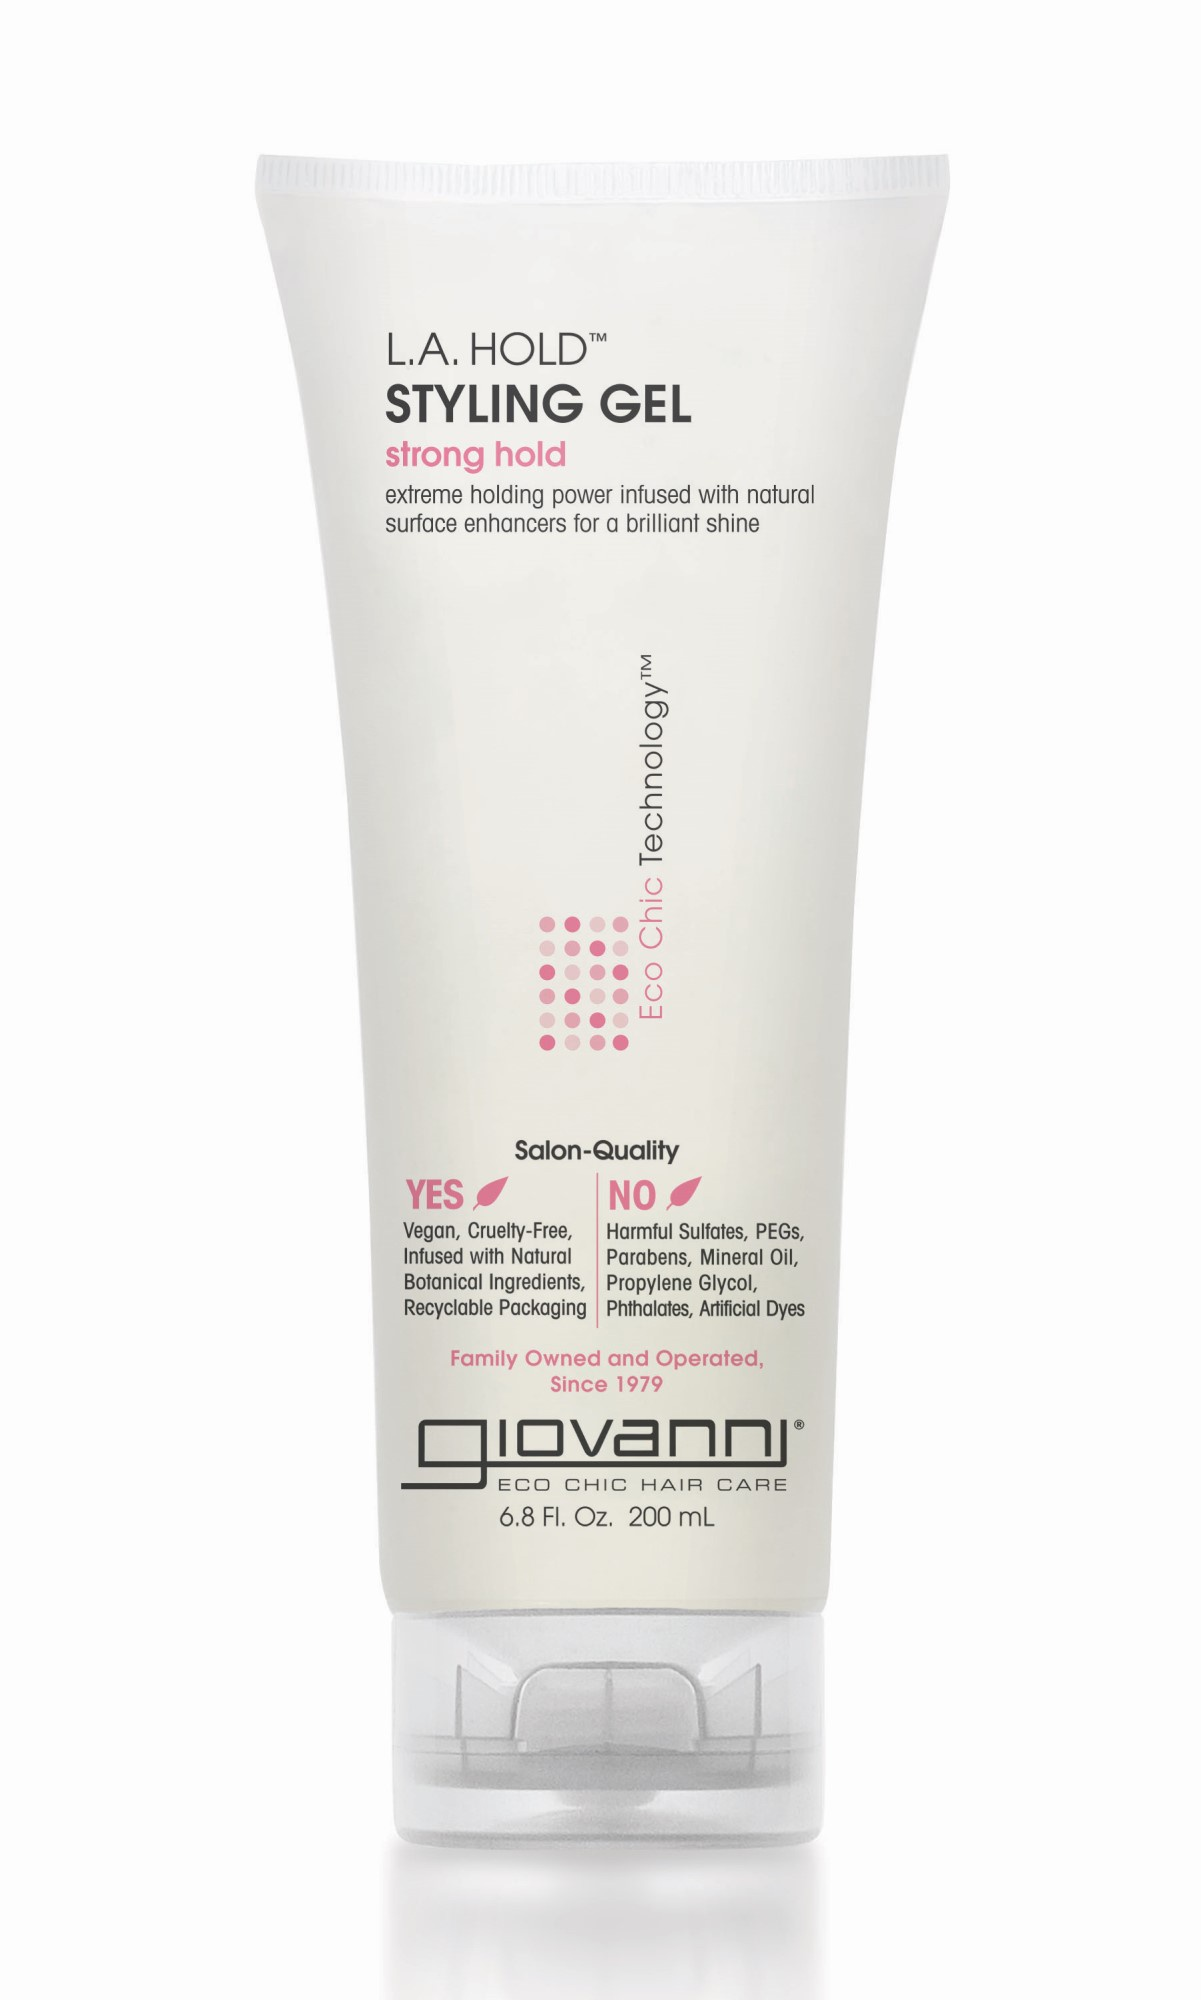 Giovanni L.A. Hold™ Styling Gel